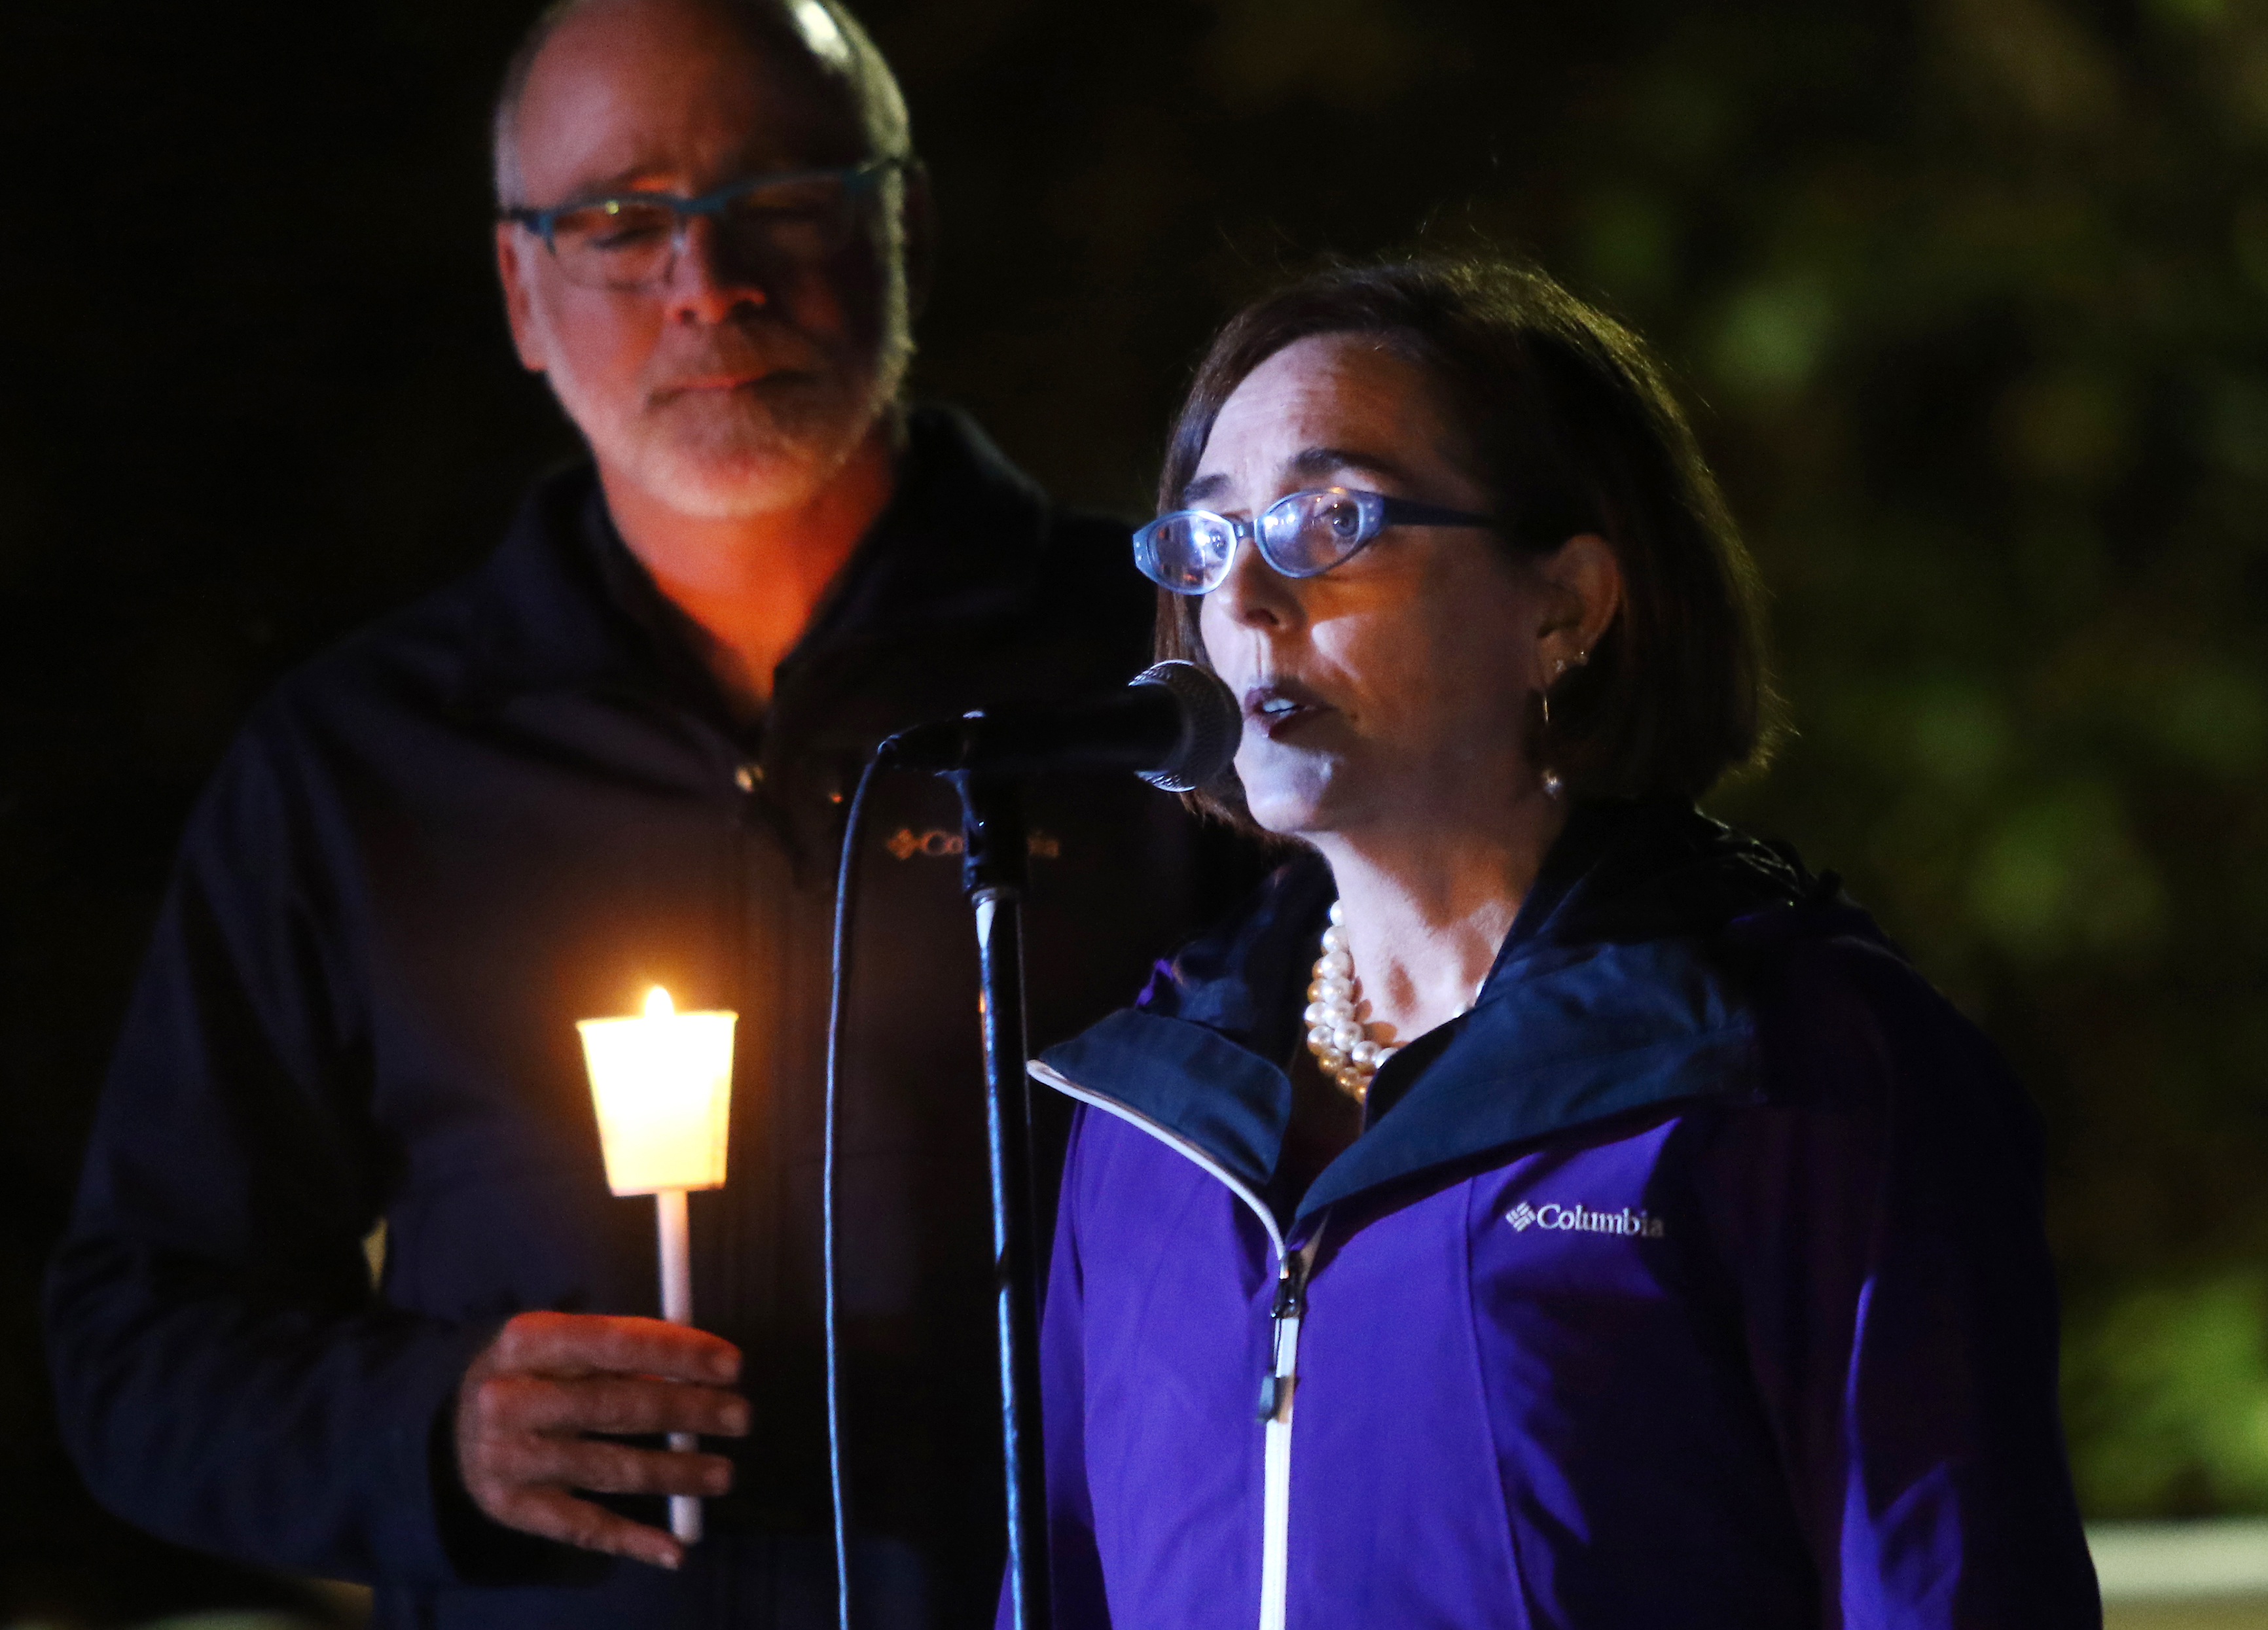 Oregon Gov. Kate Brown addresses community members gathered at a candlelight vigil for those killed during a shooting at Umpqua Community College in Roseburg, Ore., Thursday, Oct. 1, 2015. (Michael Sullivan/The News-Review via AP) MANDATORY CREDIT